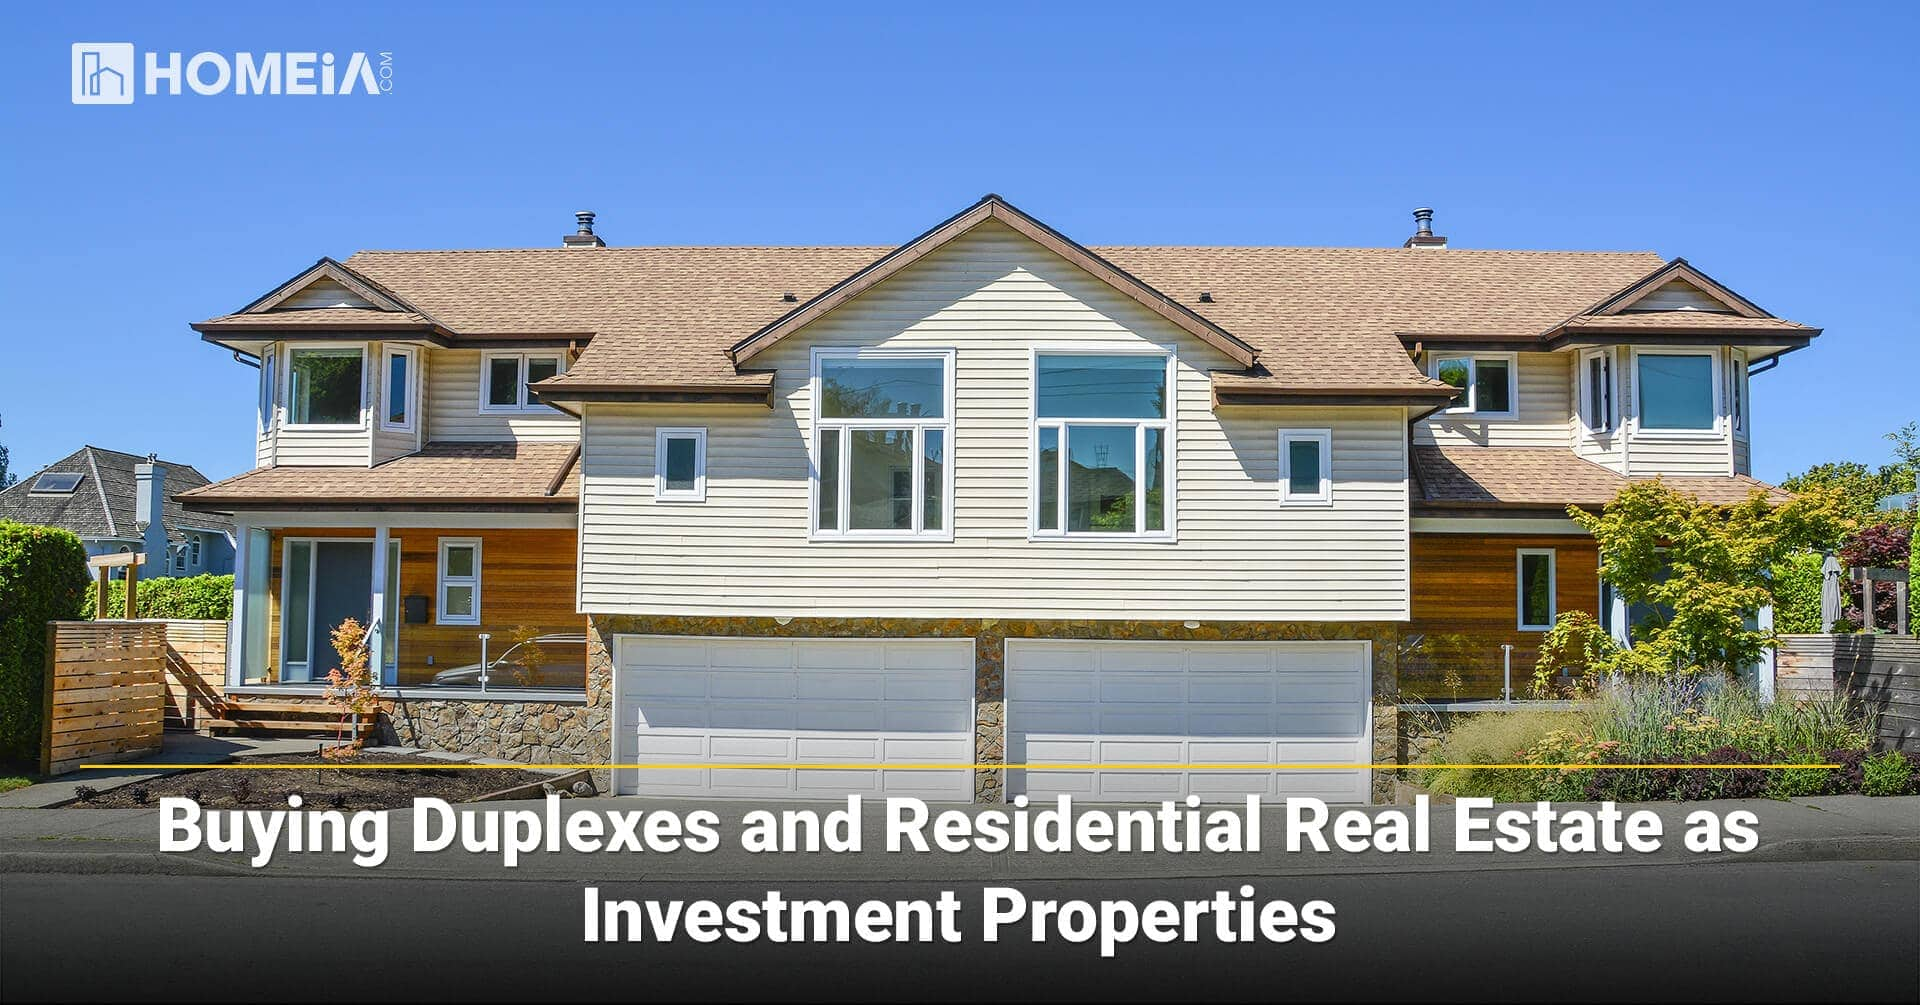 Buying Duplexes and Residential Real Estate as Investment Properties